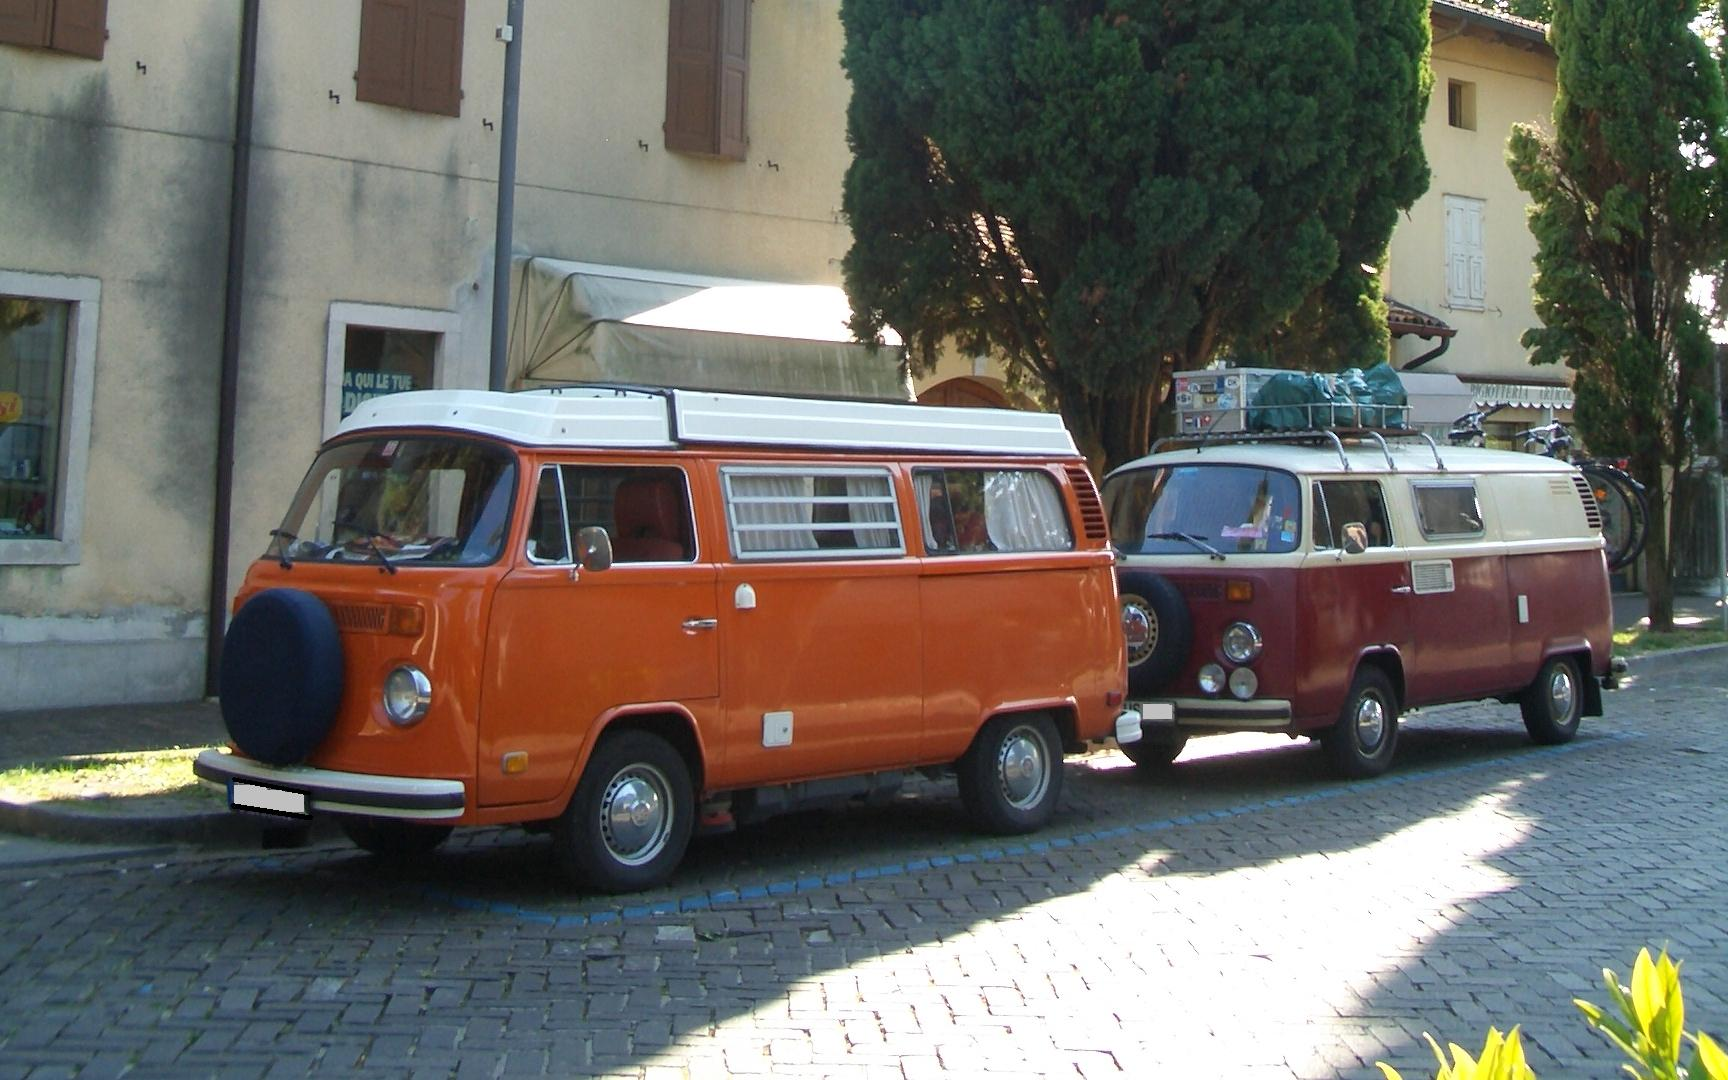 an orange Westfalia camper